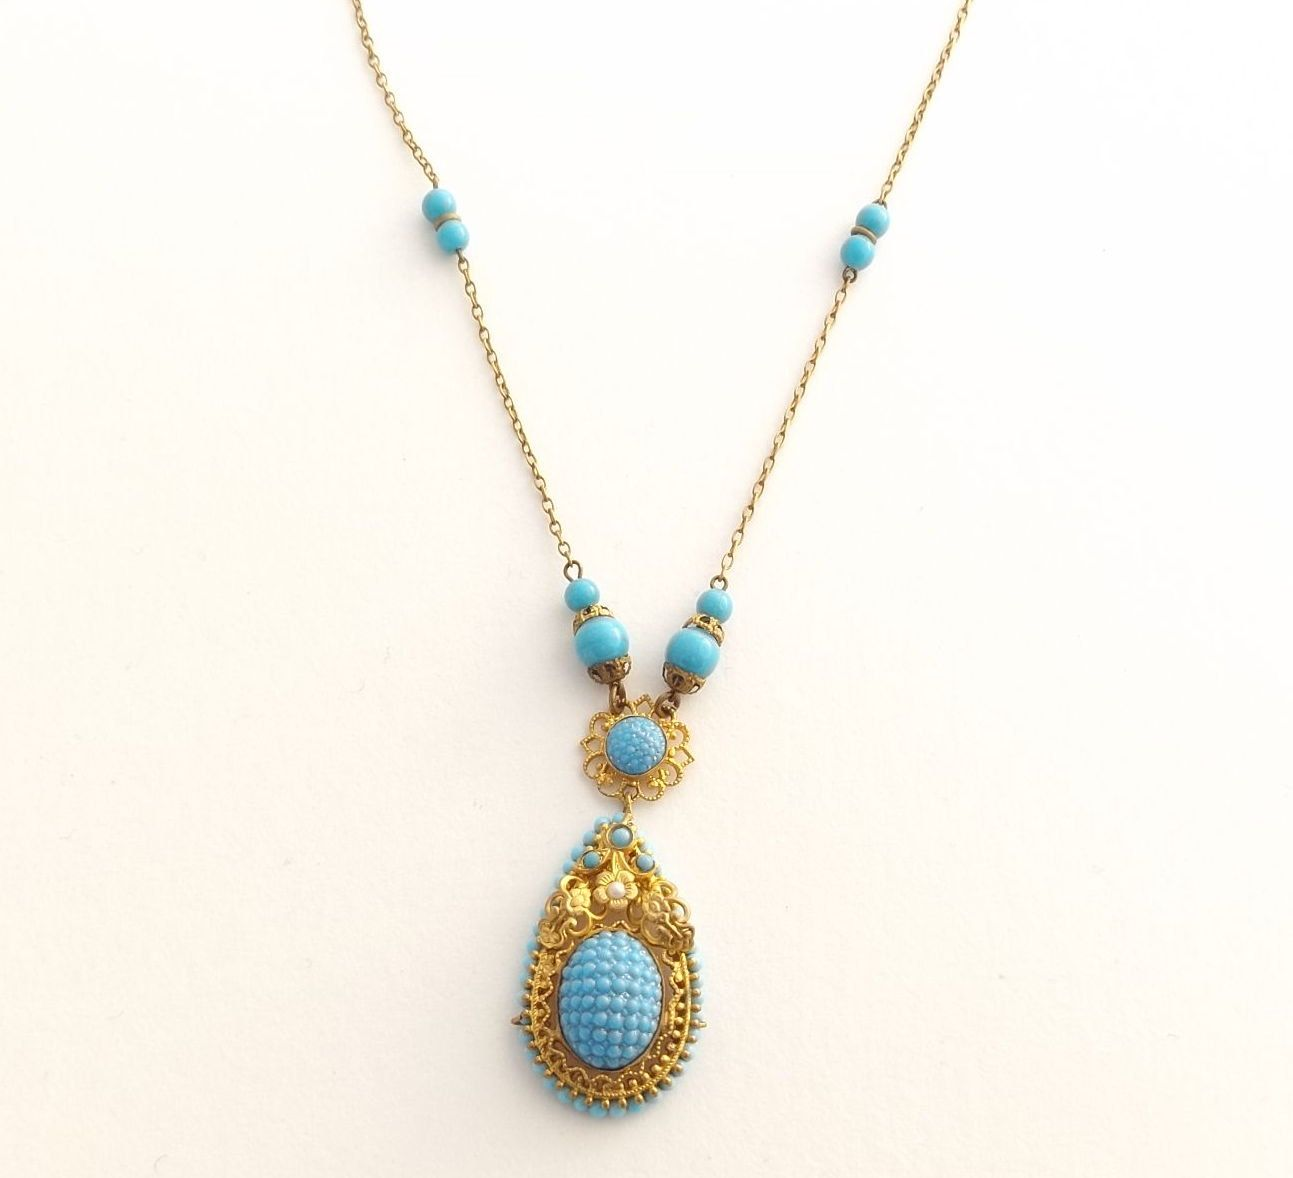 Antique Blue Glass Lavalier Necklace | Gold Tone, Faux Pearl, Power Blue And Turquoise Glass Costume Necklace by DaisysCabinet on Etsy